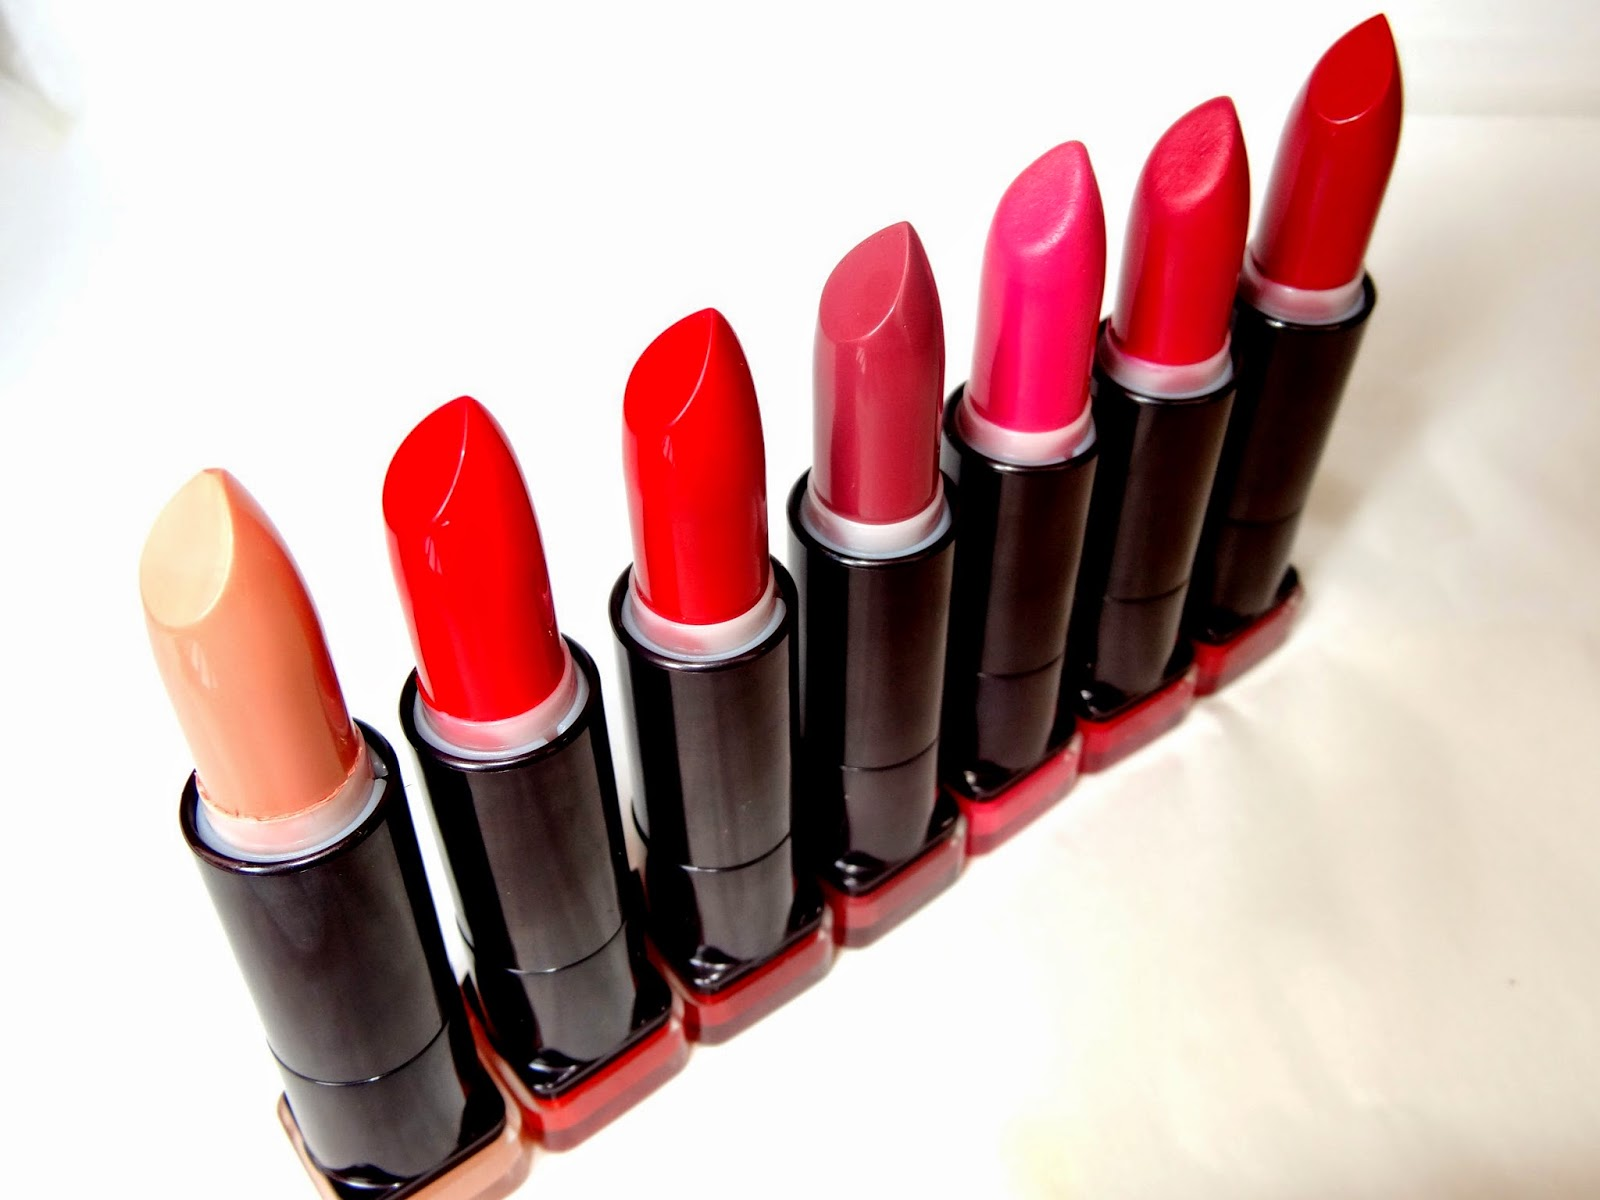 a picture of covergirl lip perfection lipsticks